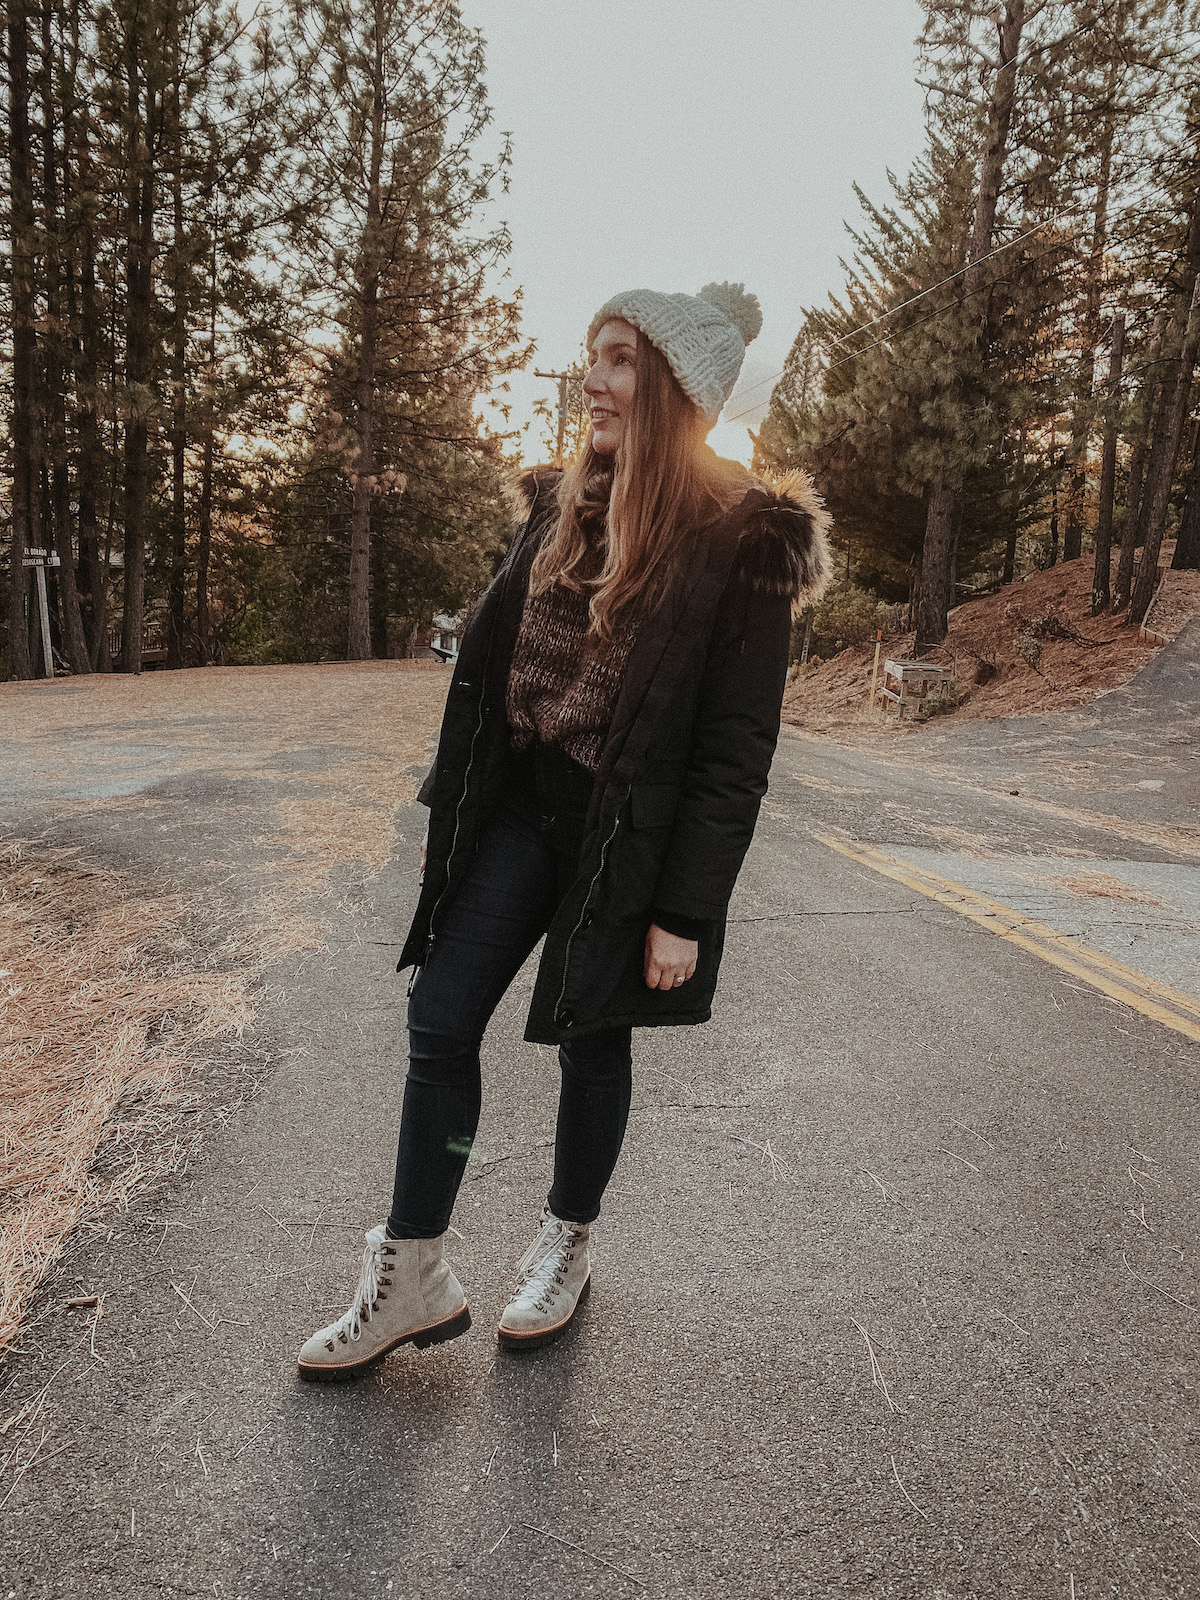 The (Mostly) Sustainable Capsule Wardrobe - Winter Update | the cozy, comfy, and sustainable pieces to add to your wardrobe and make the best winter outfits | W&S